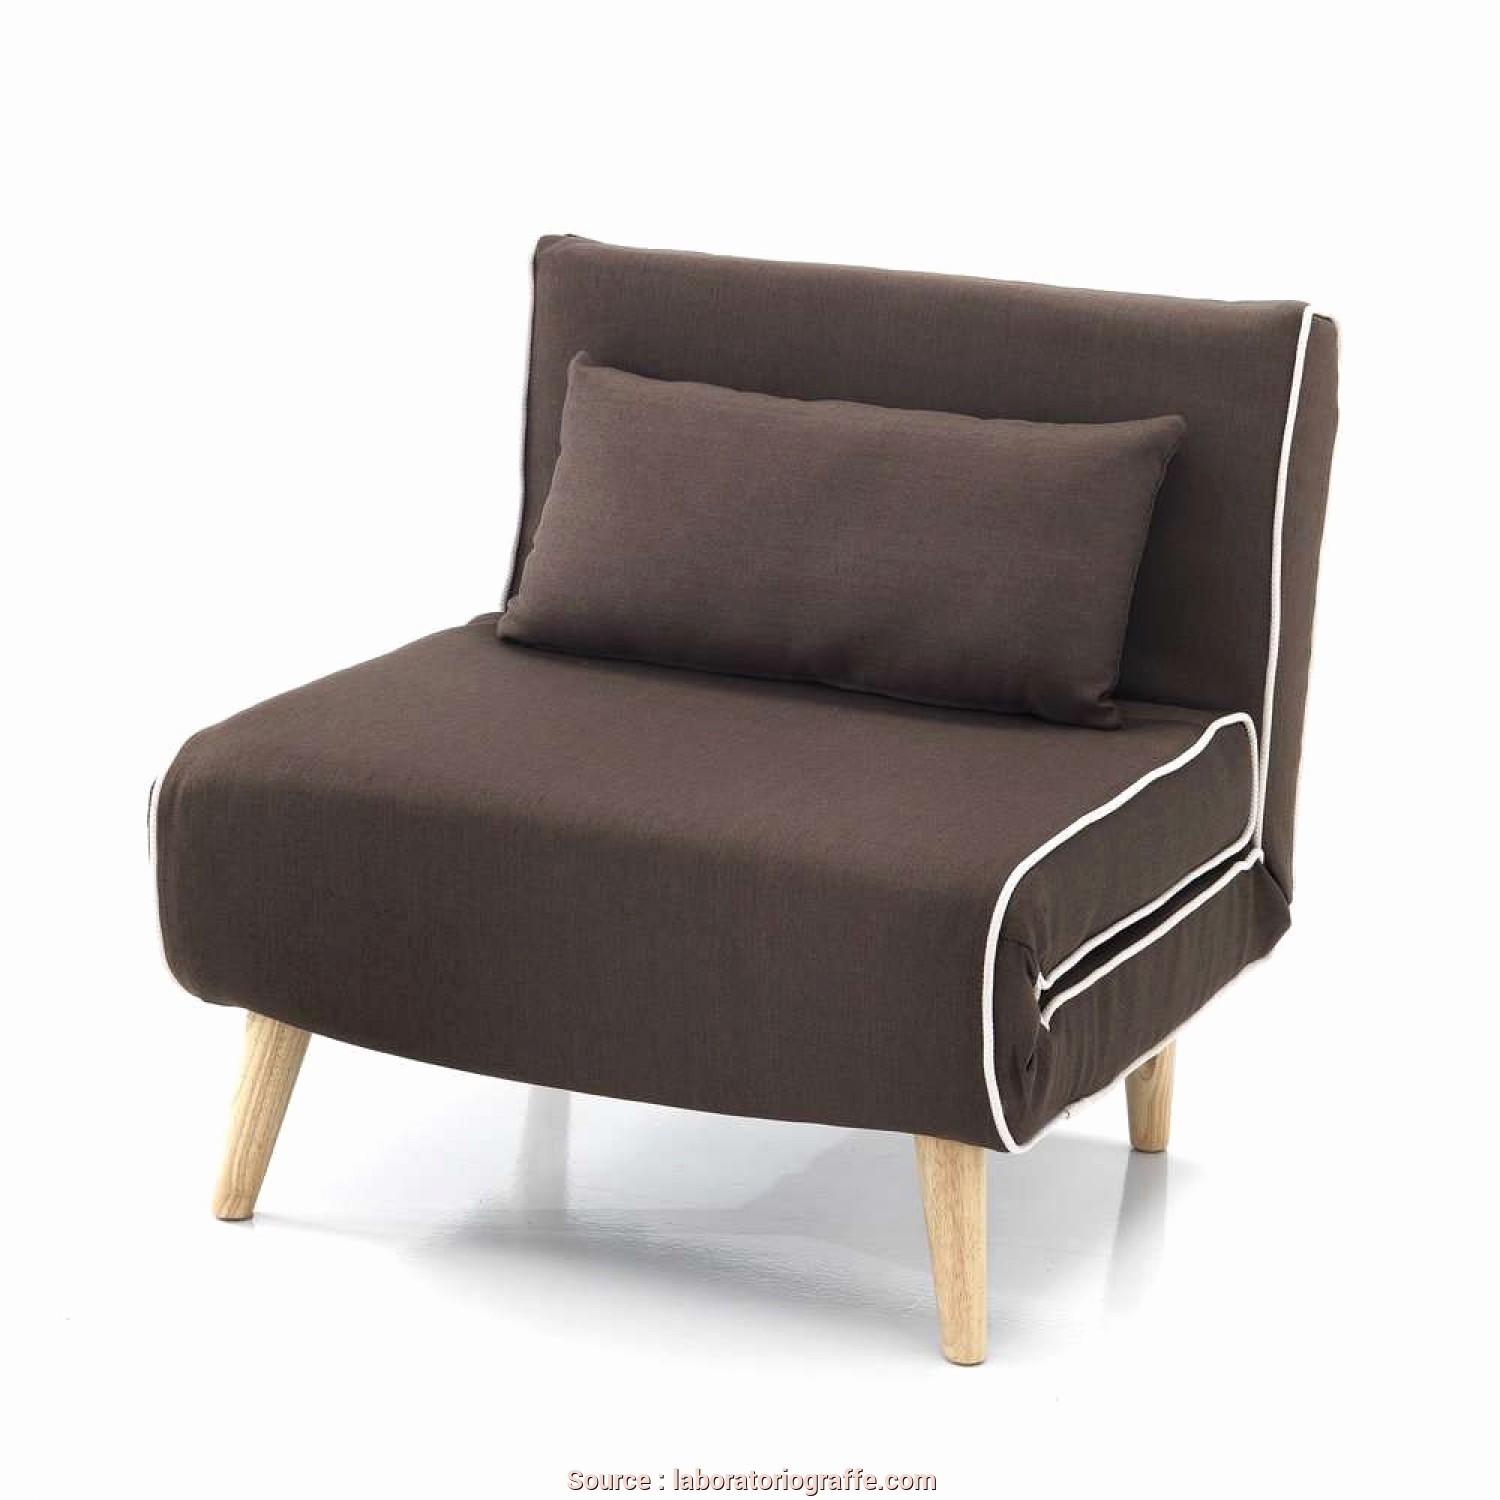 Loveable 5 poltrona letto singolo mondo convenienza jake vintage - Pouf letto singolo mondo convenienza ...